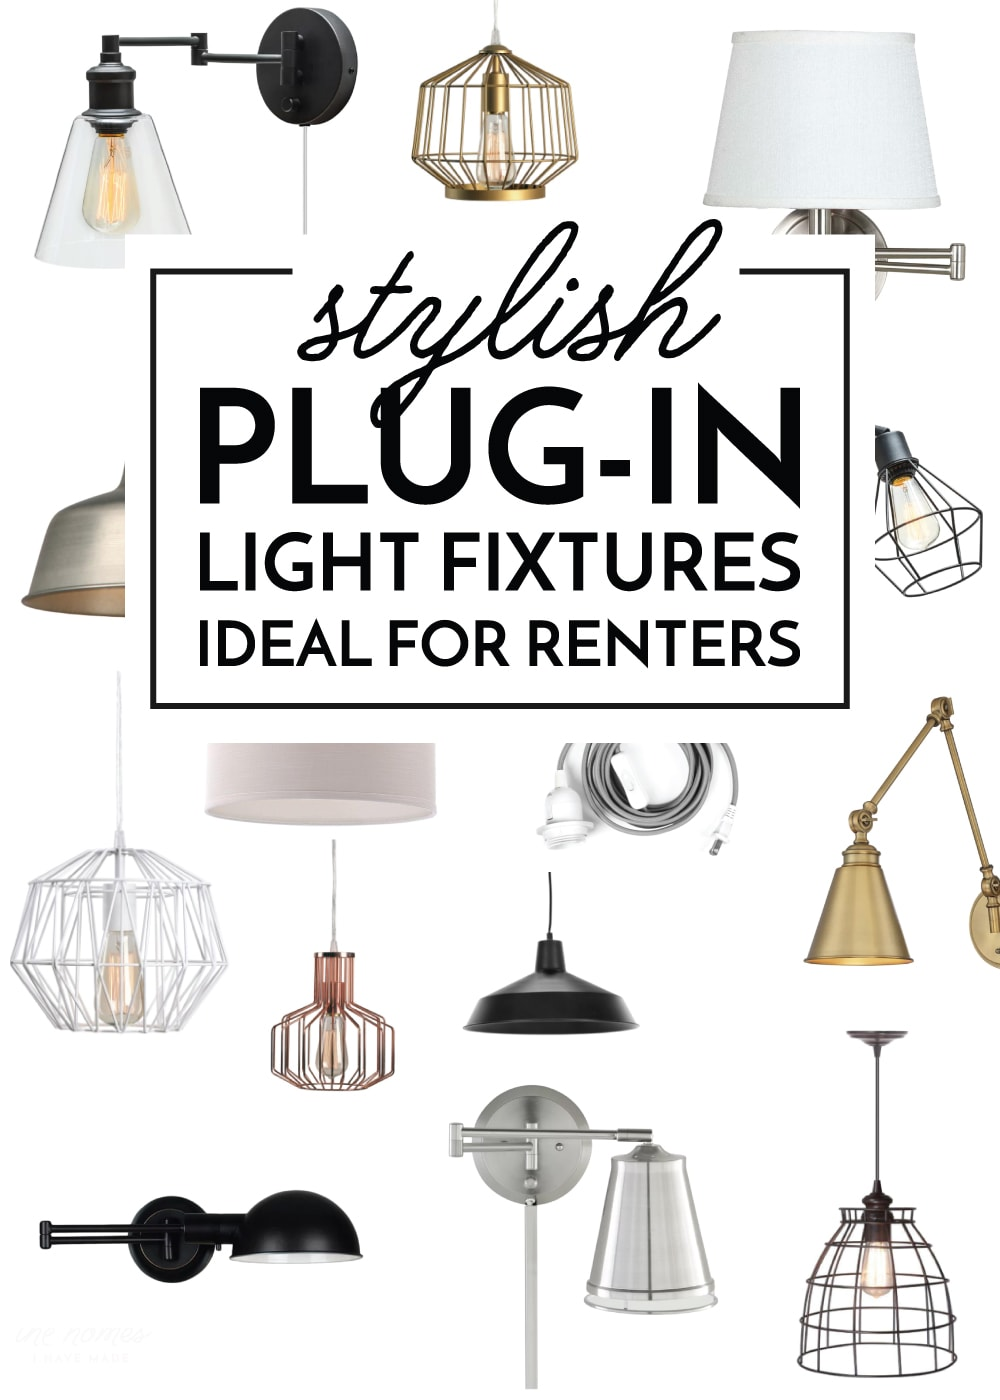 Plug-In Light Fixtures